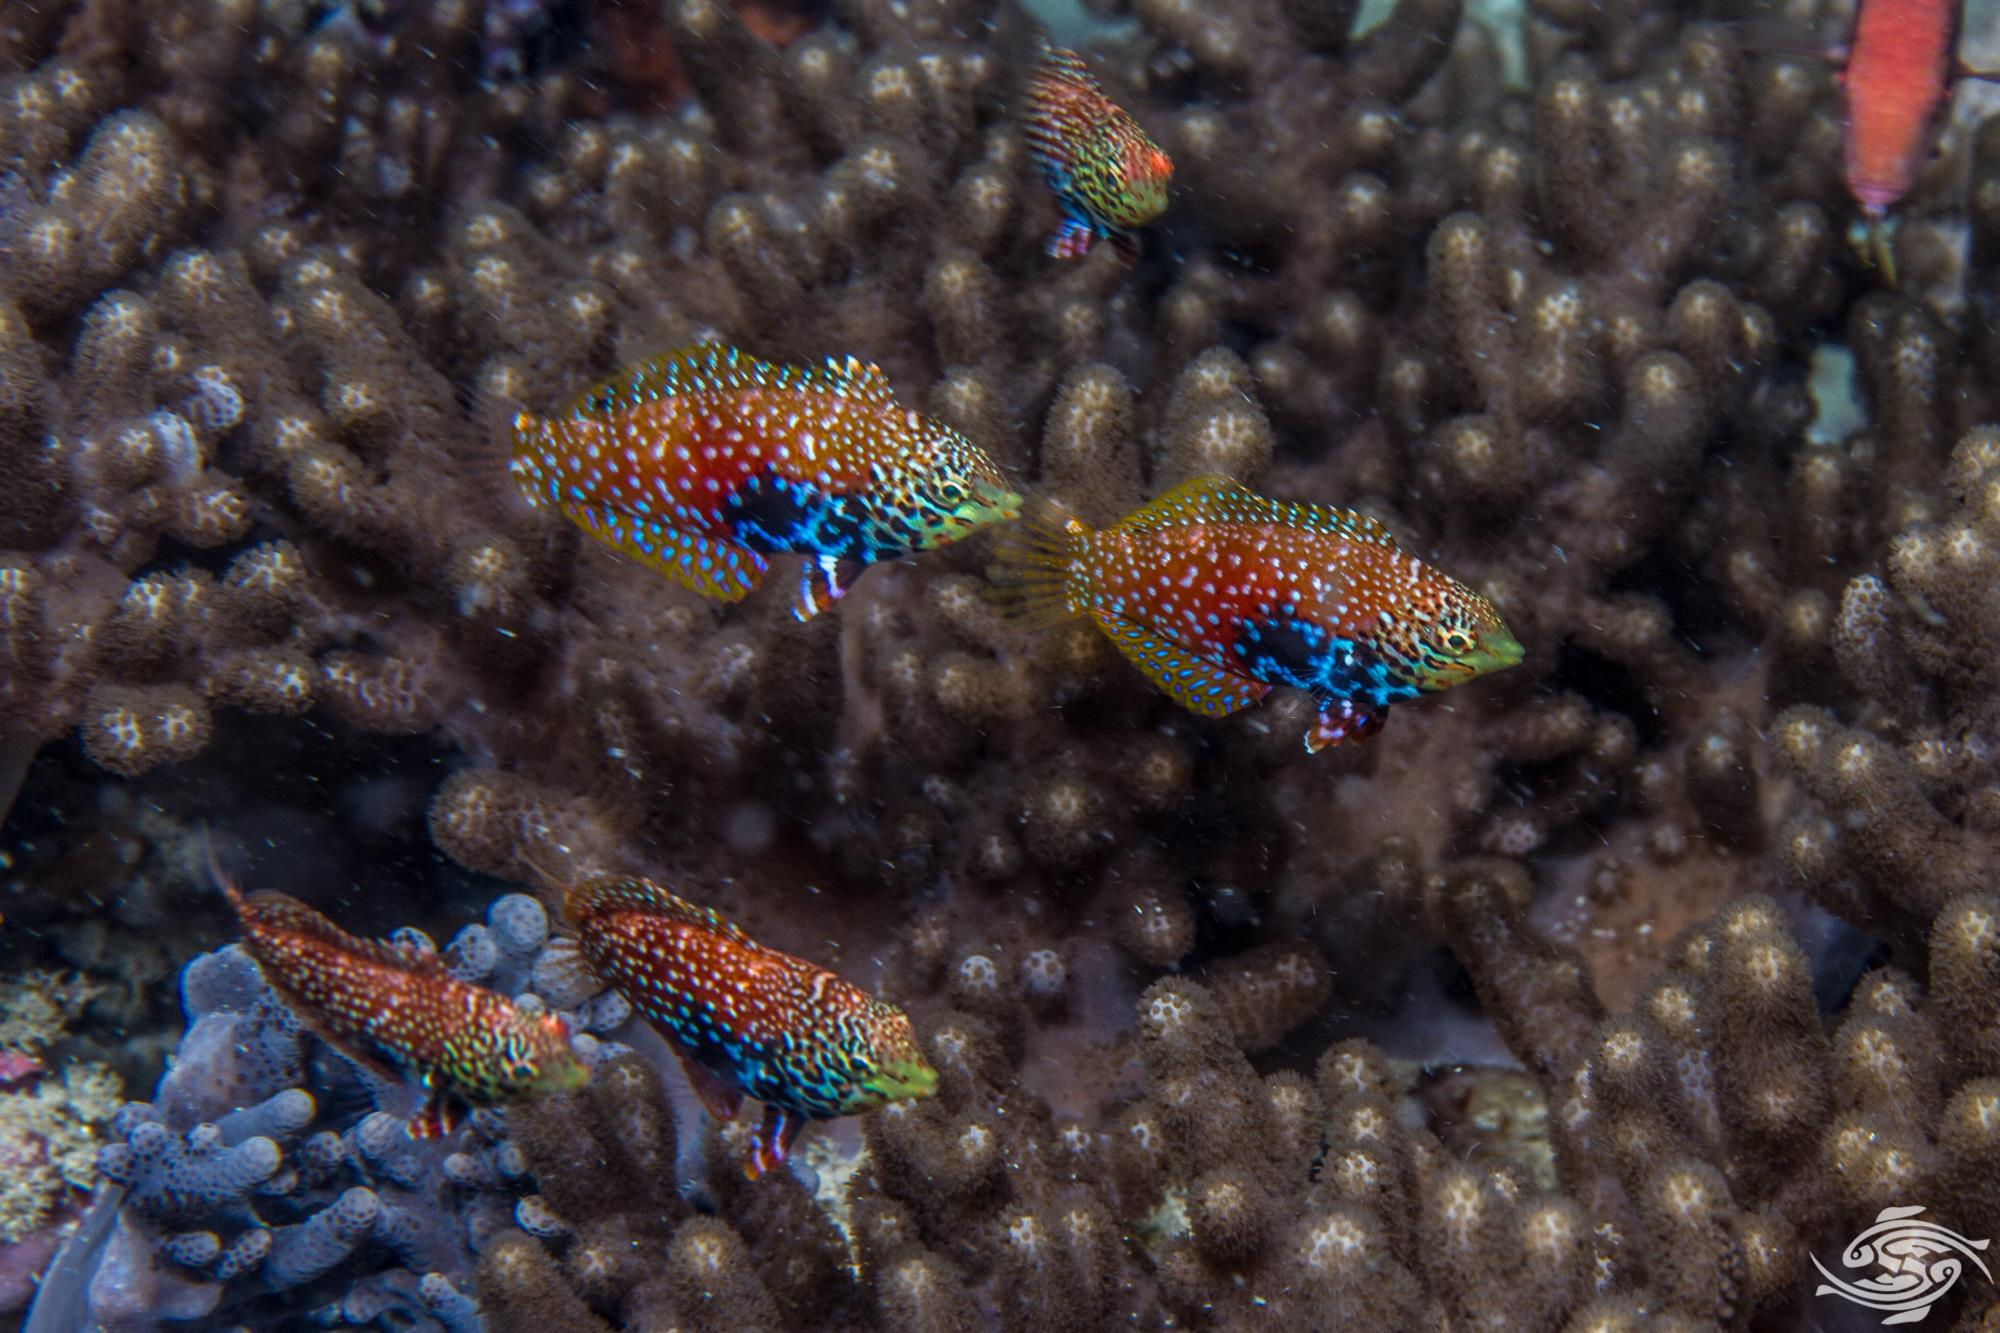 Divided Leopard Wrasse (Macropharyngodon bipartitus) is also known as the Vermiculate Leopard Wrasse, African Leopard Wrasse or simply the Divided Wrasse